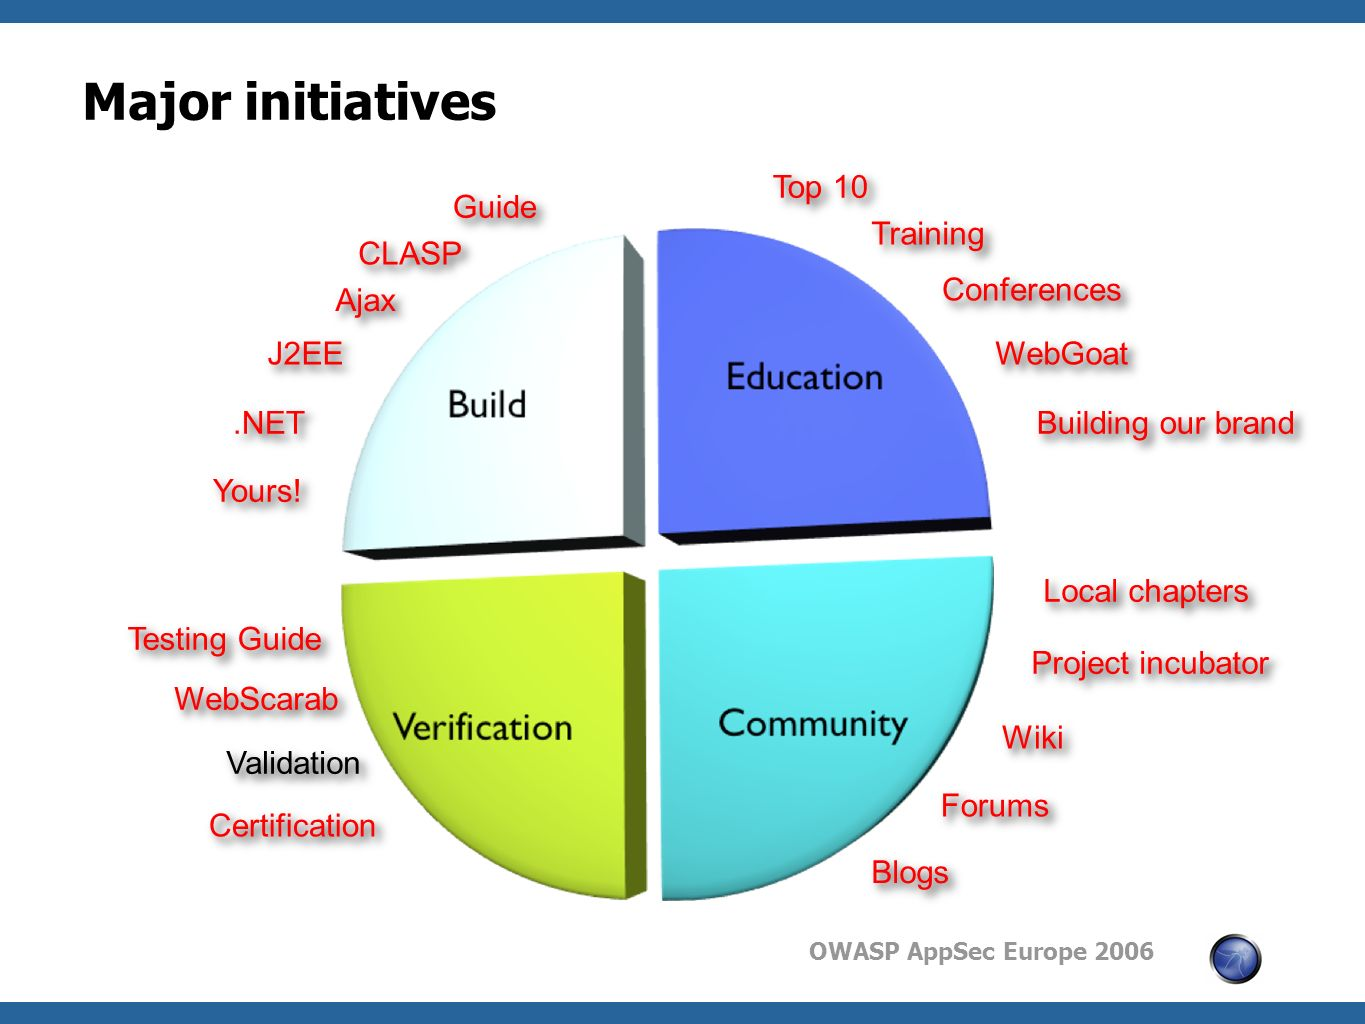 OWASP AppSec Europe 2006 Major initiatives Guide Training CLASP Testing Guide Project incubator Wiki Forums Blogs Top 10 Conferences WebScarab WebGoat Ajax J2EE.NET Yours.